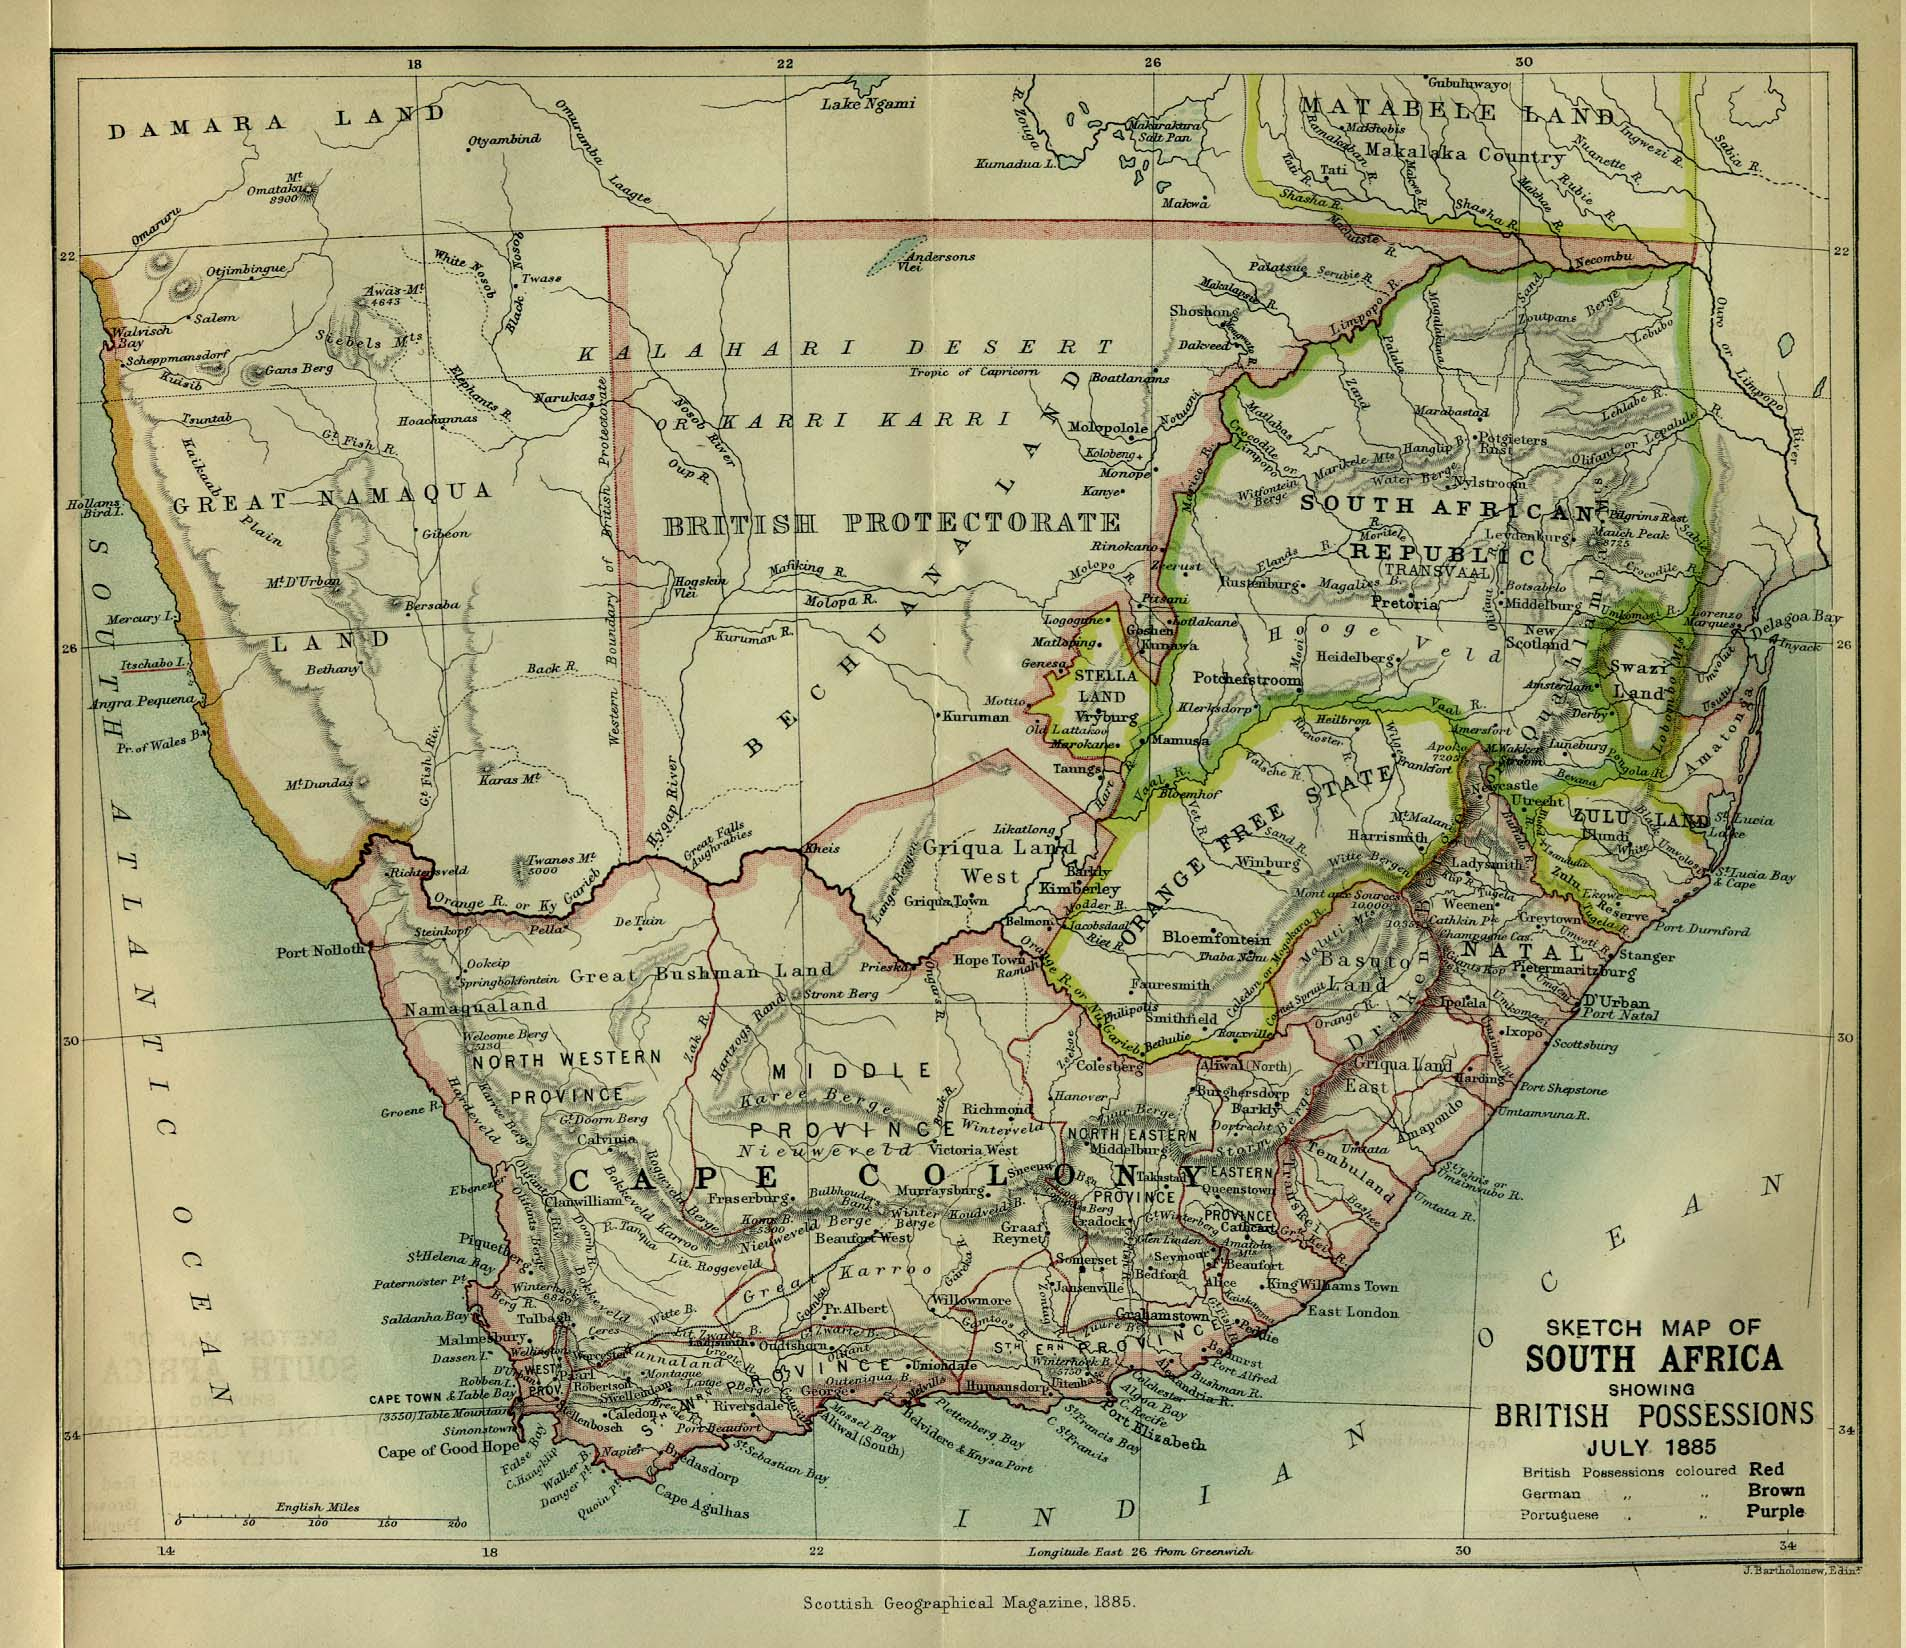 Getting started african history gsu library research guides at sketch map of south africa showing british possessions july 1885 from the scottish geographical magazine published by the scottish geographical society gumiabroncs Gallery